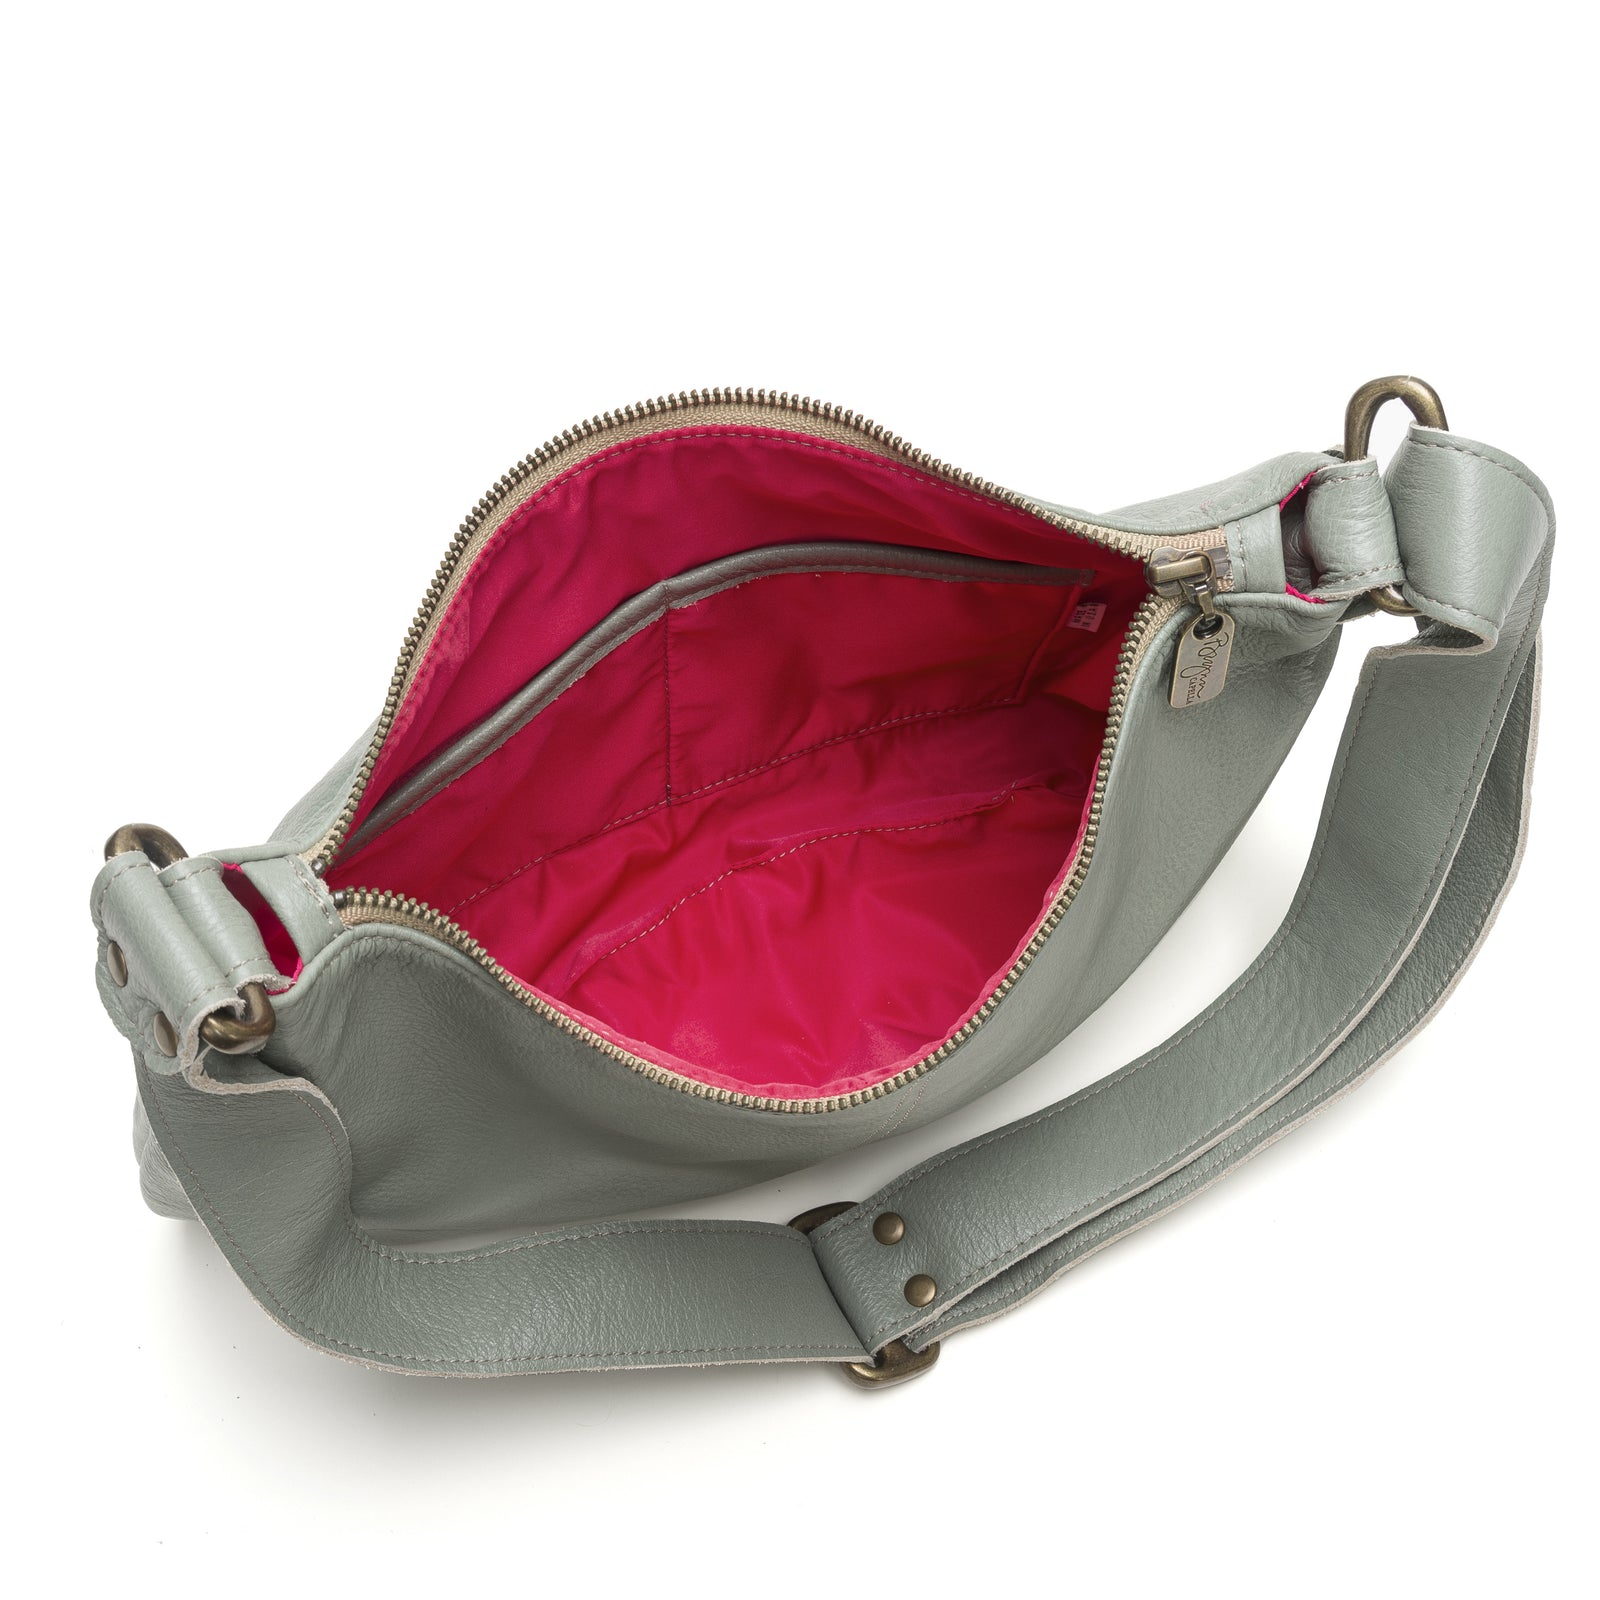 Mini Pamela Crossbody Hobo - Sea Breeze - Brynn Capella, Hobo